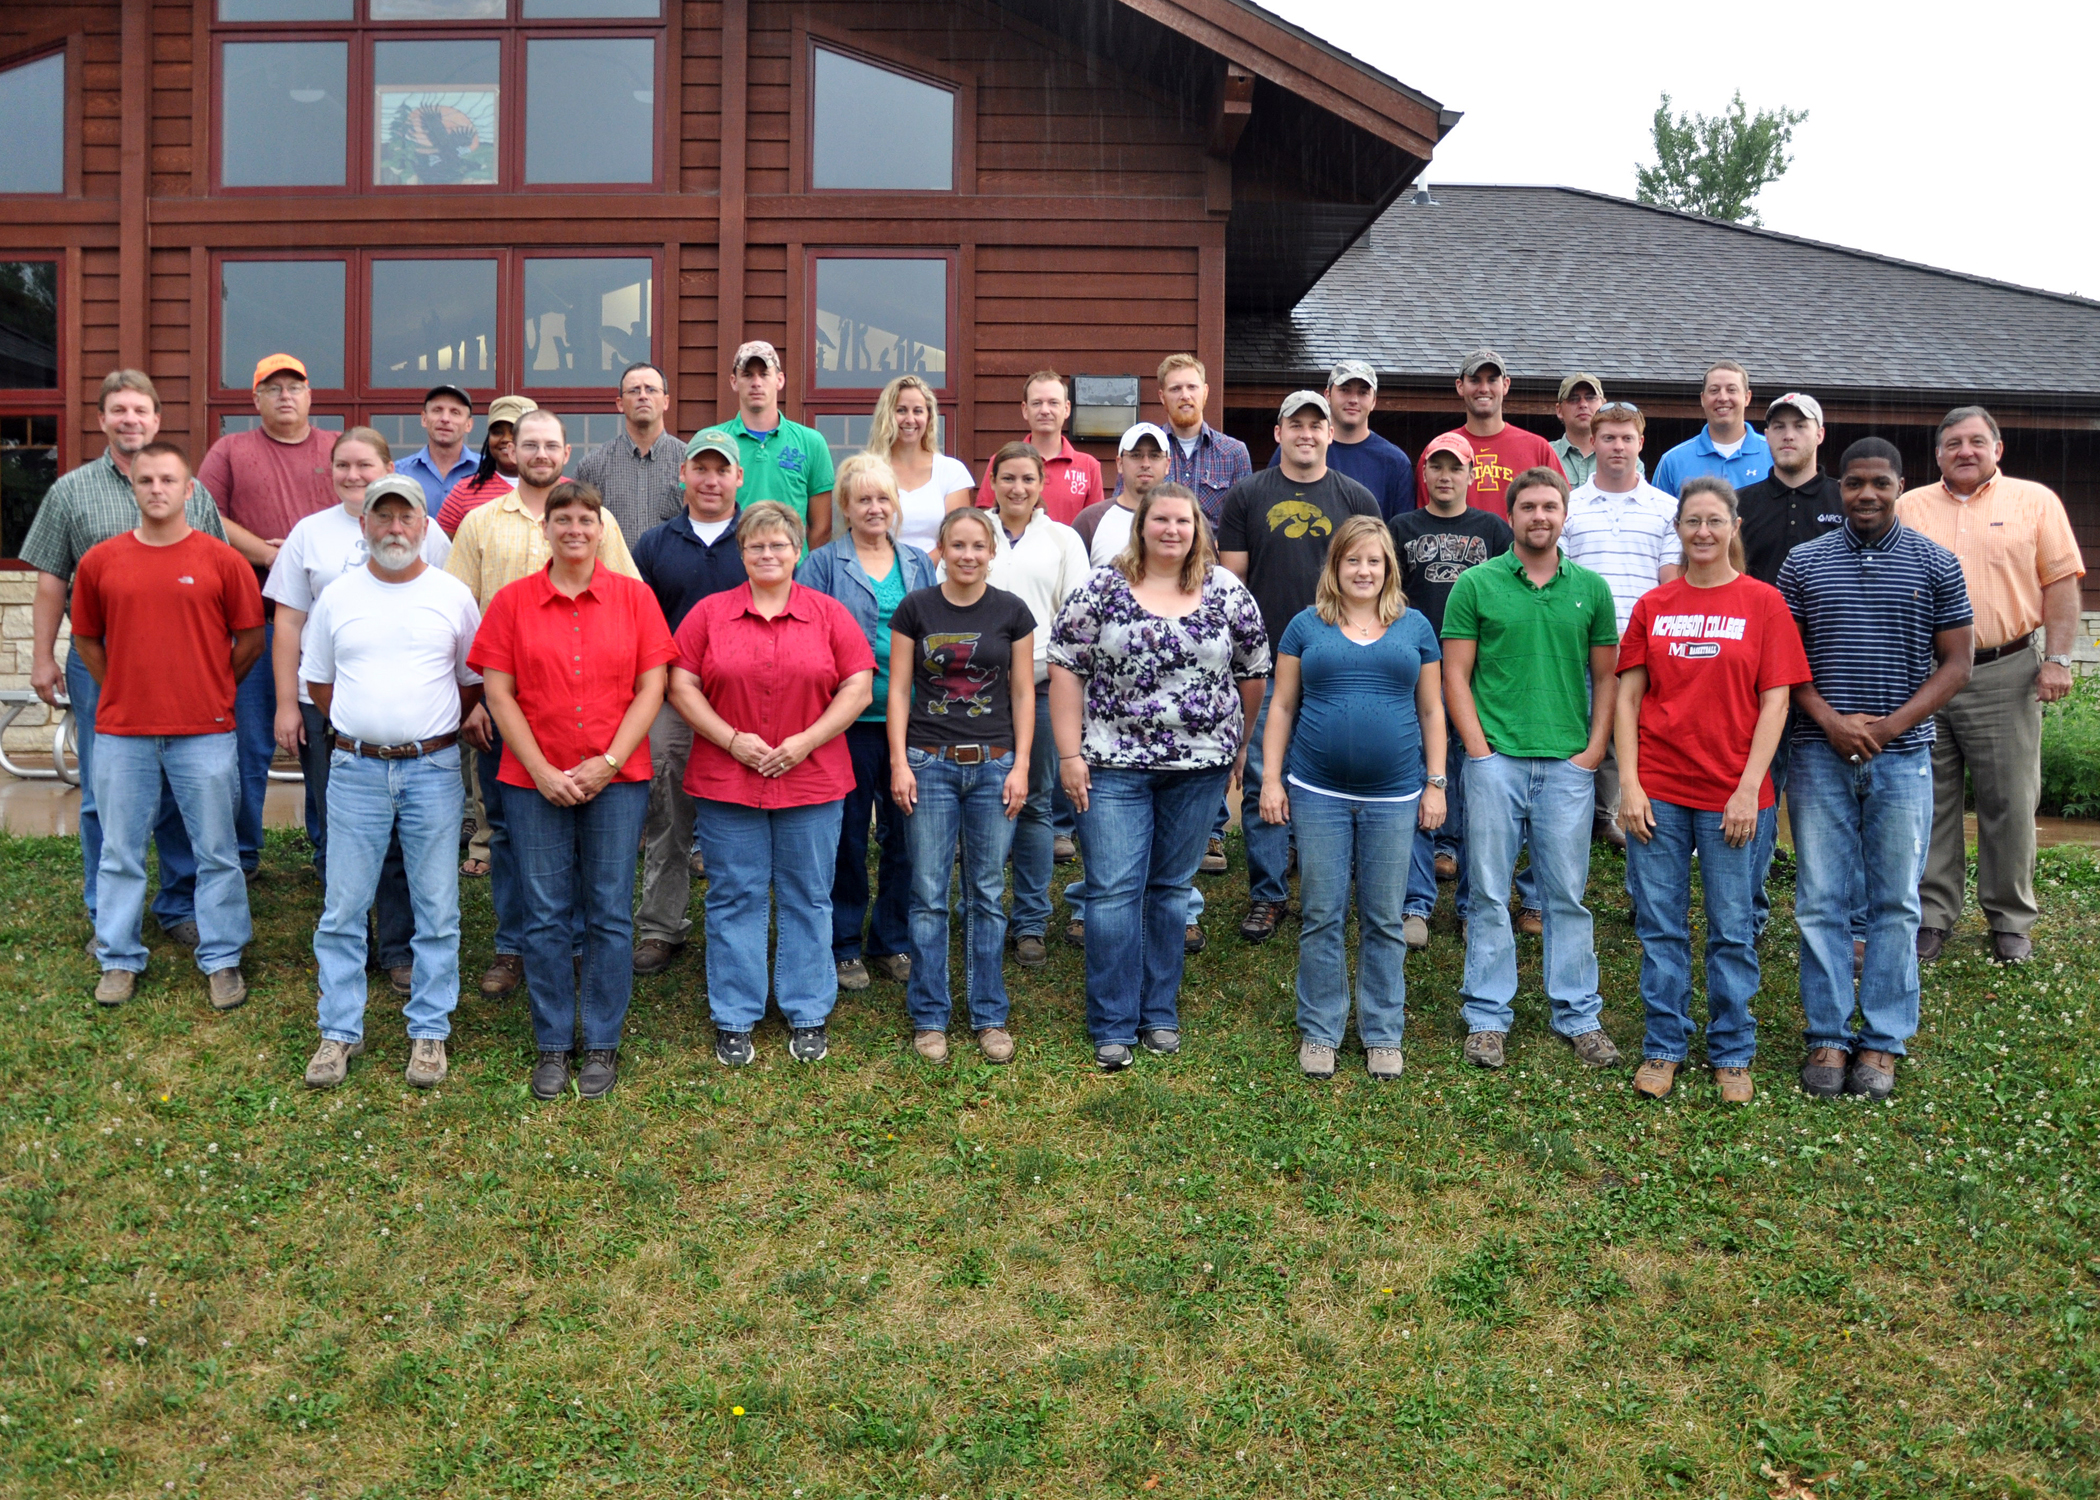 NRCS employees pose for a picture at engineering application training at the Grimes Farm.